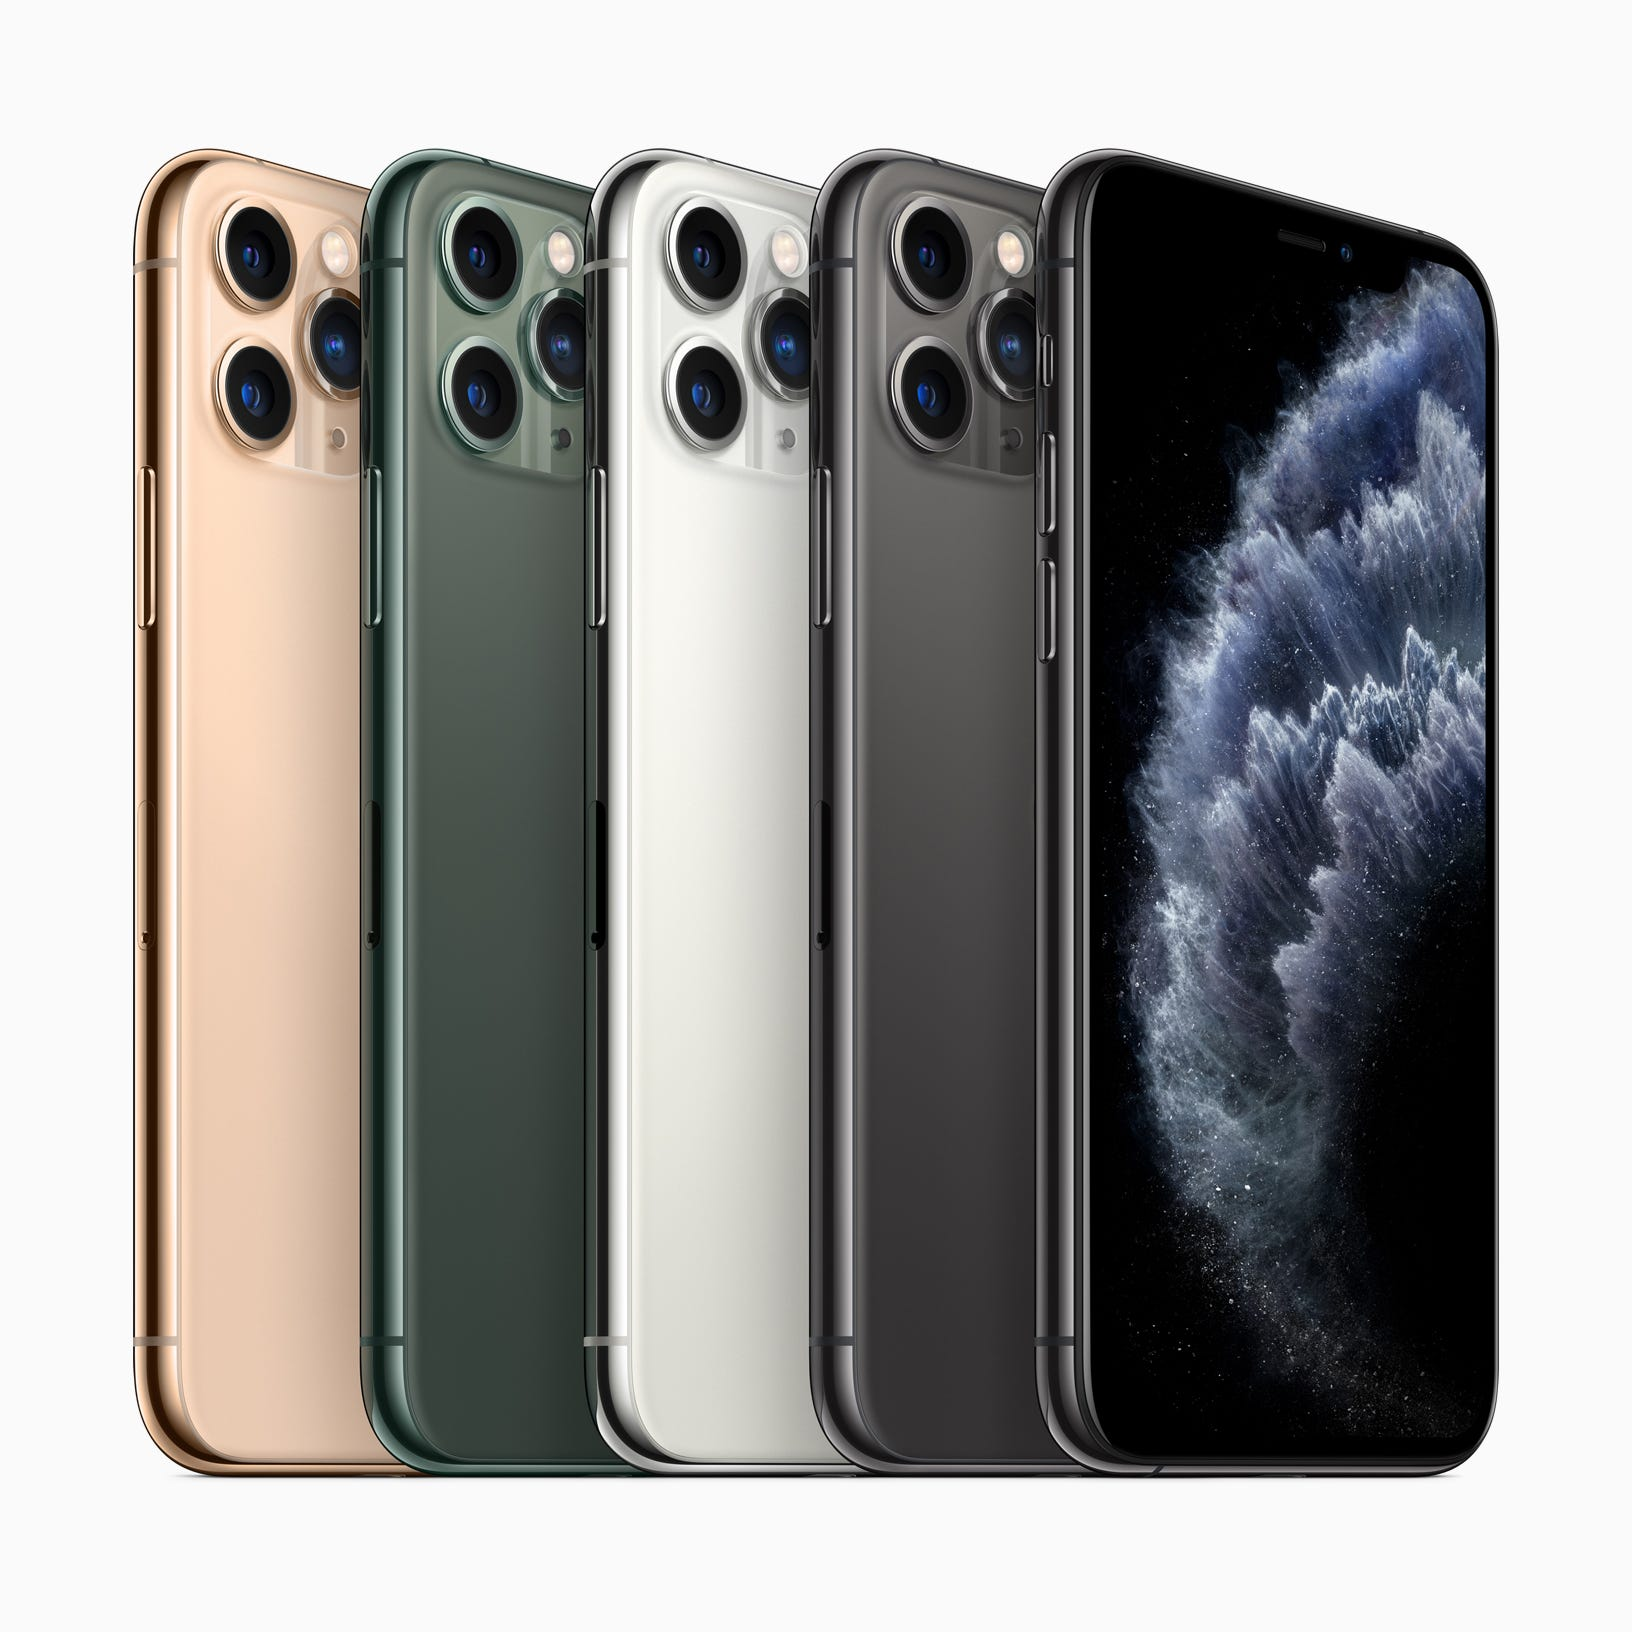 Apple's new phones start at $699, up to $1,449. Old iPhone 8 is $449